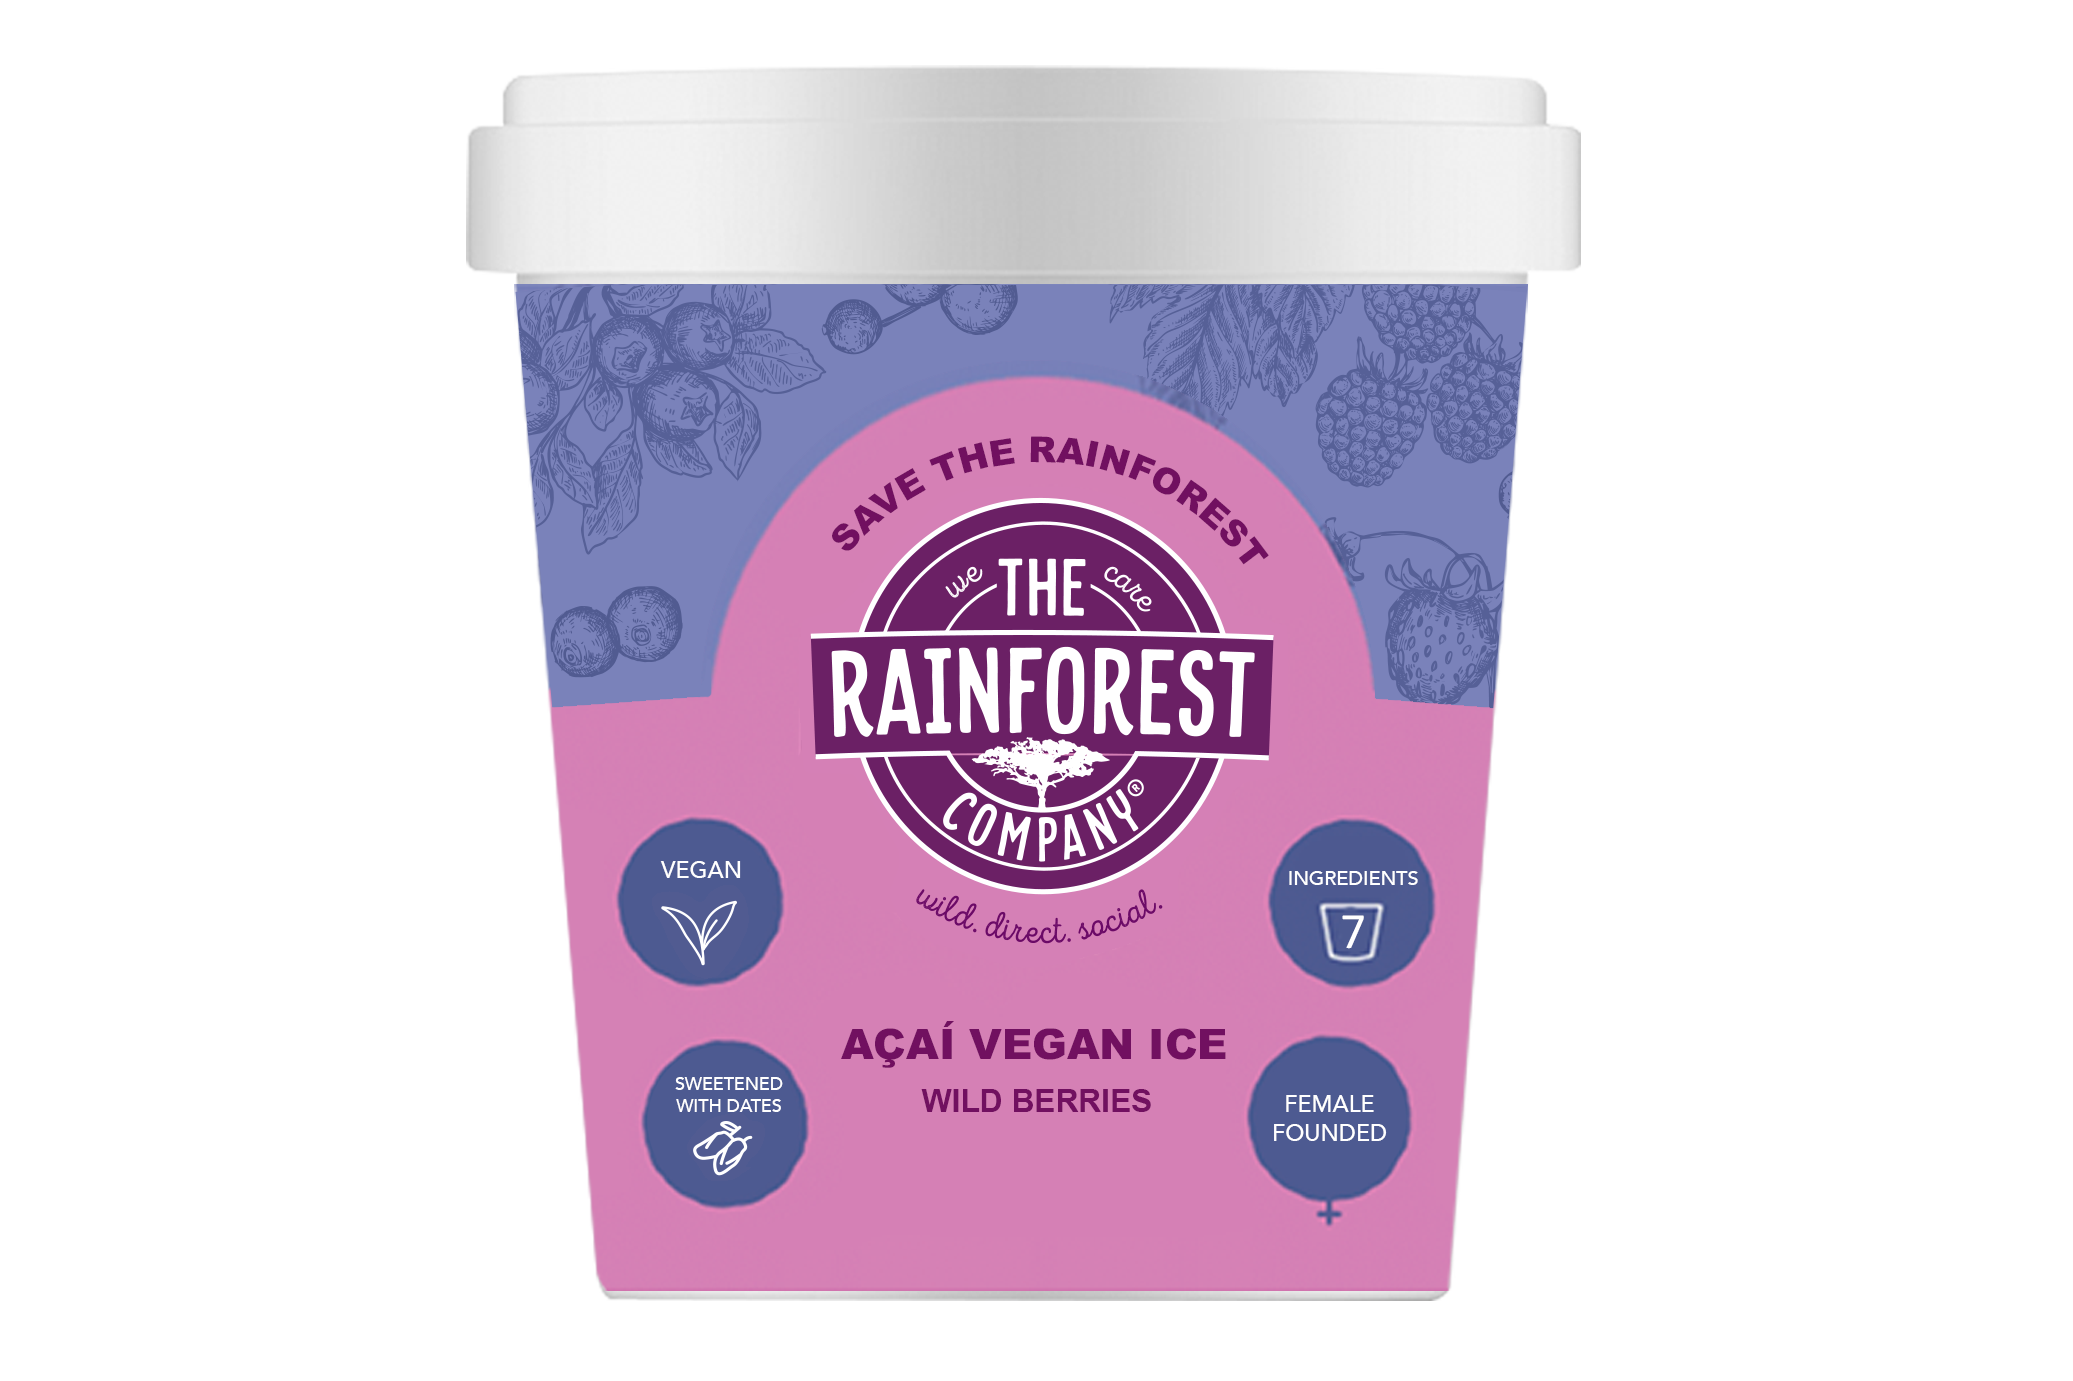 Acai Vegan Ice Wild Berries